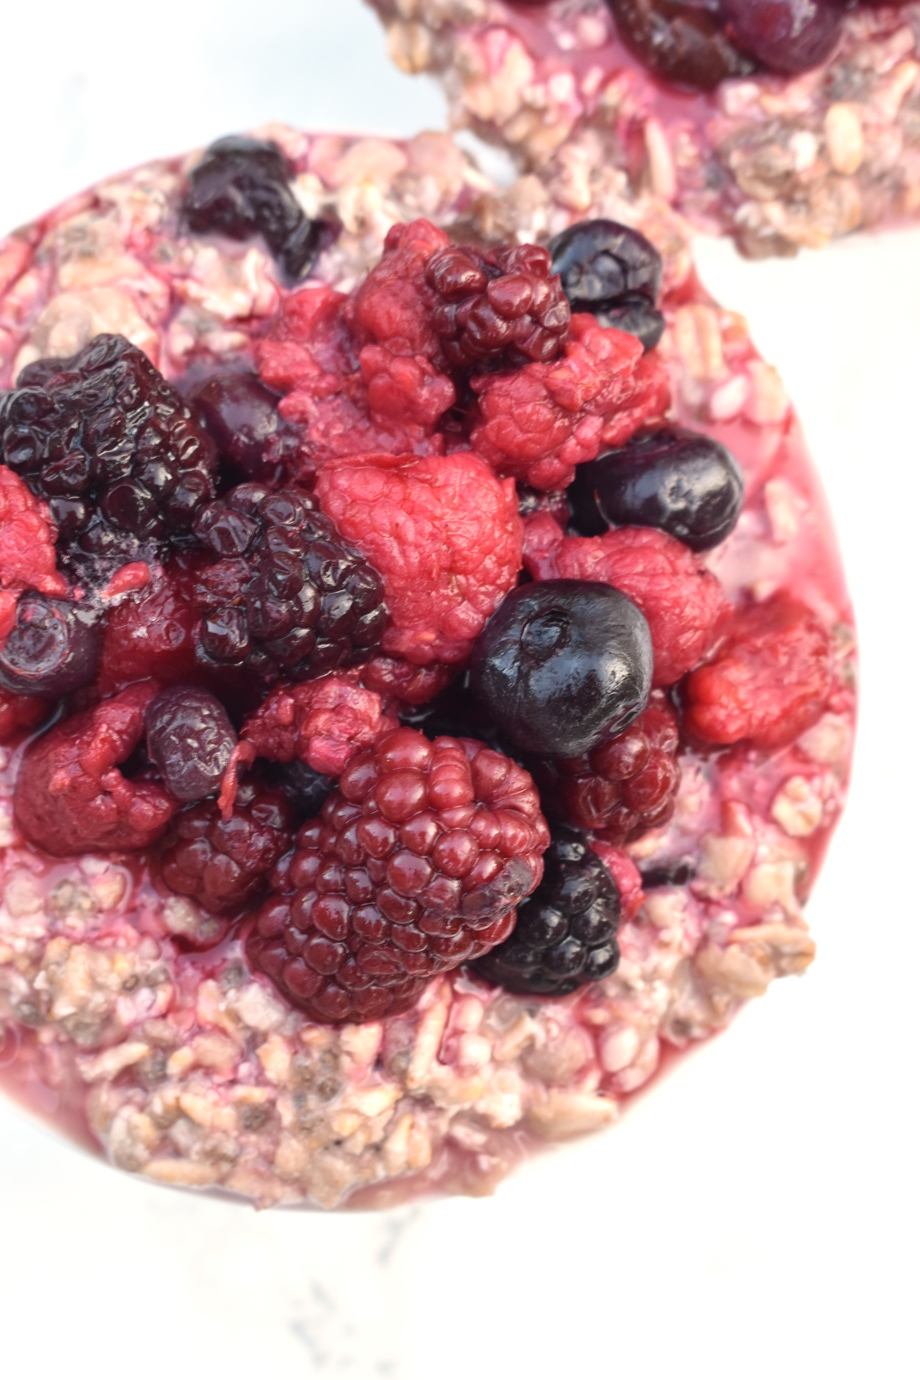 Oatmeal with berries and chia seeds